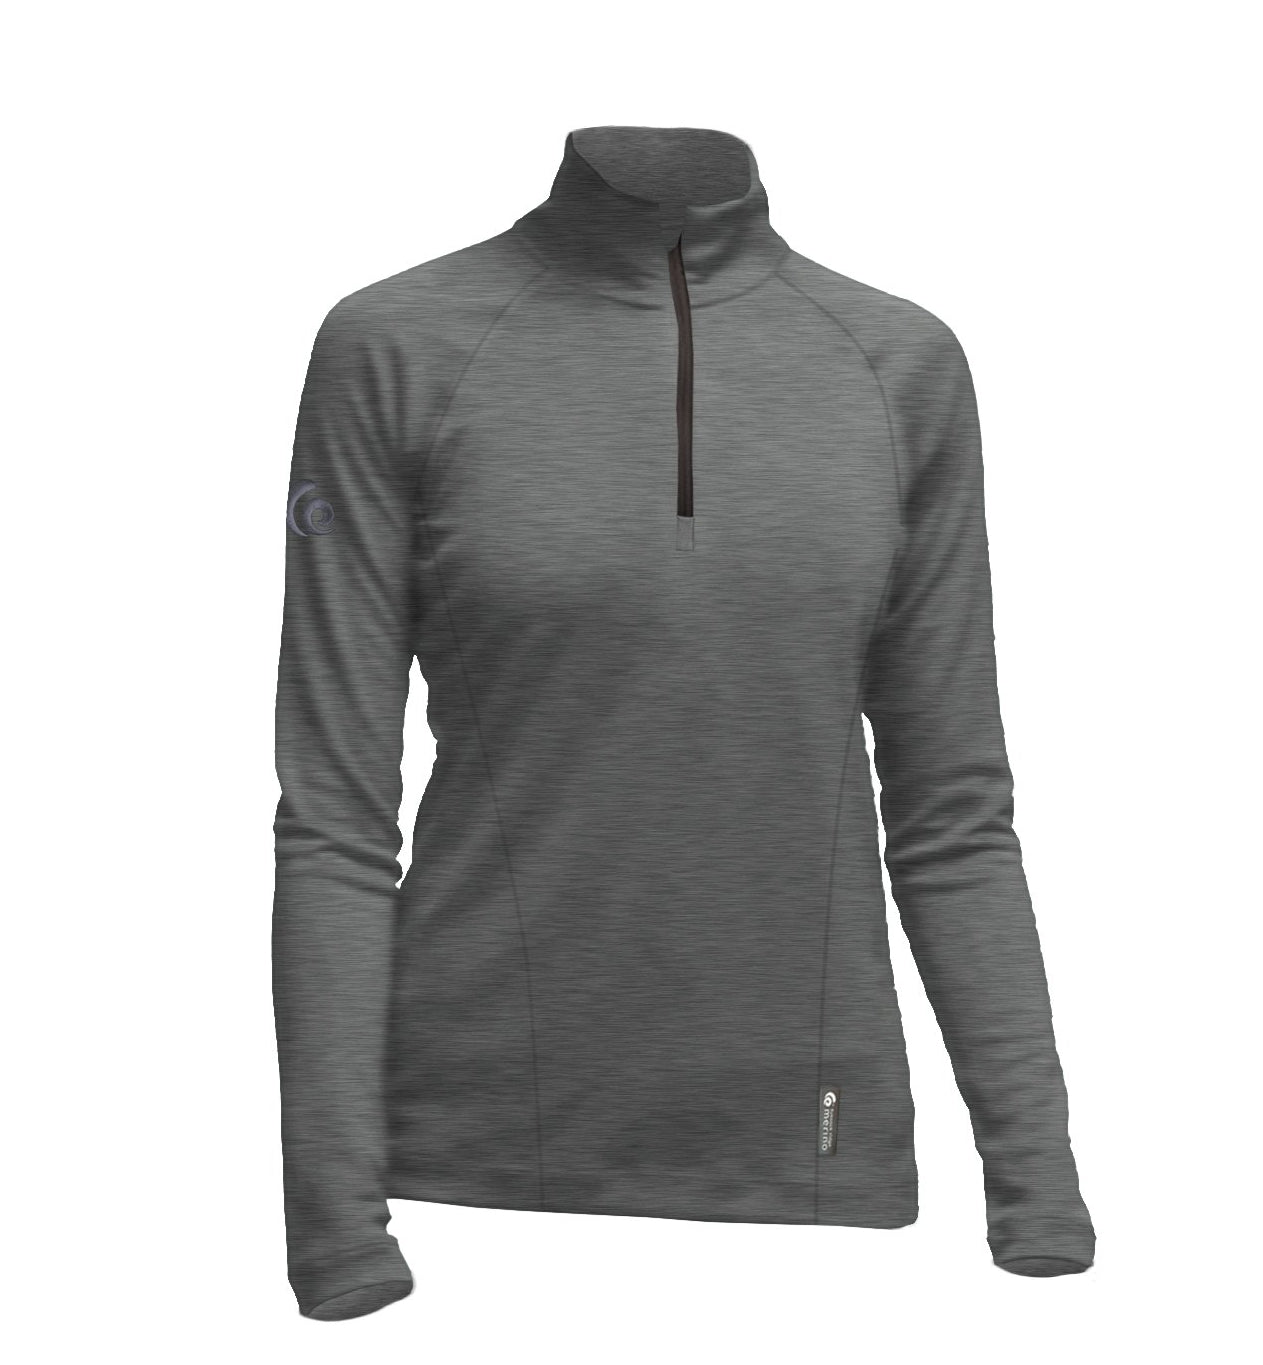 Merino Ladies Charcoal Marle Mid-weight Half Zip. Made in New Zealand